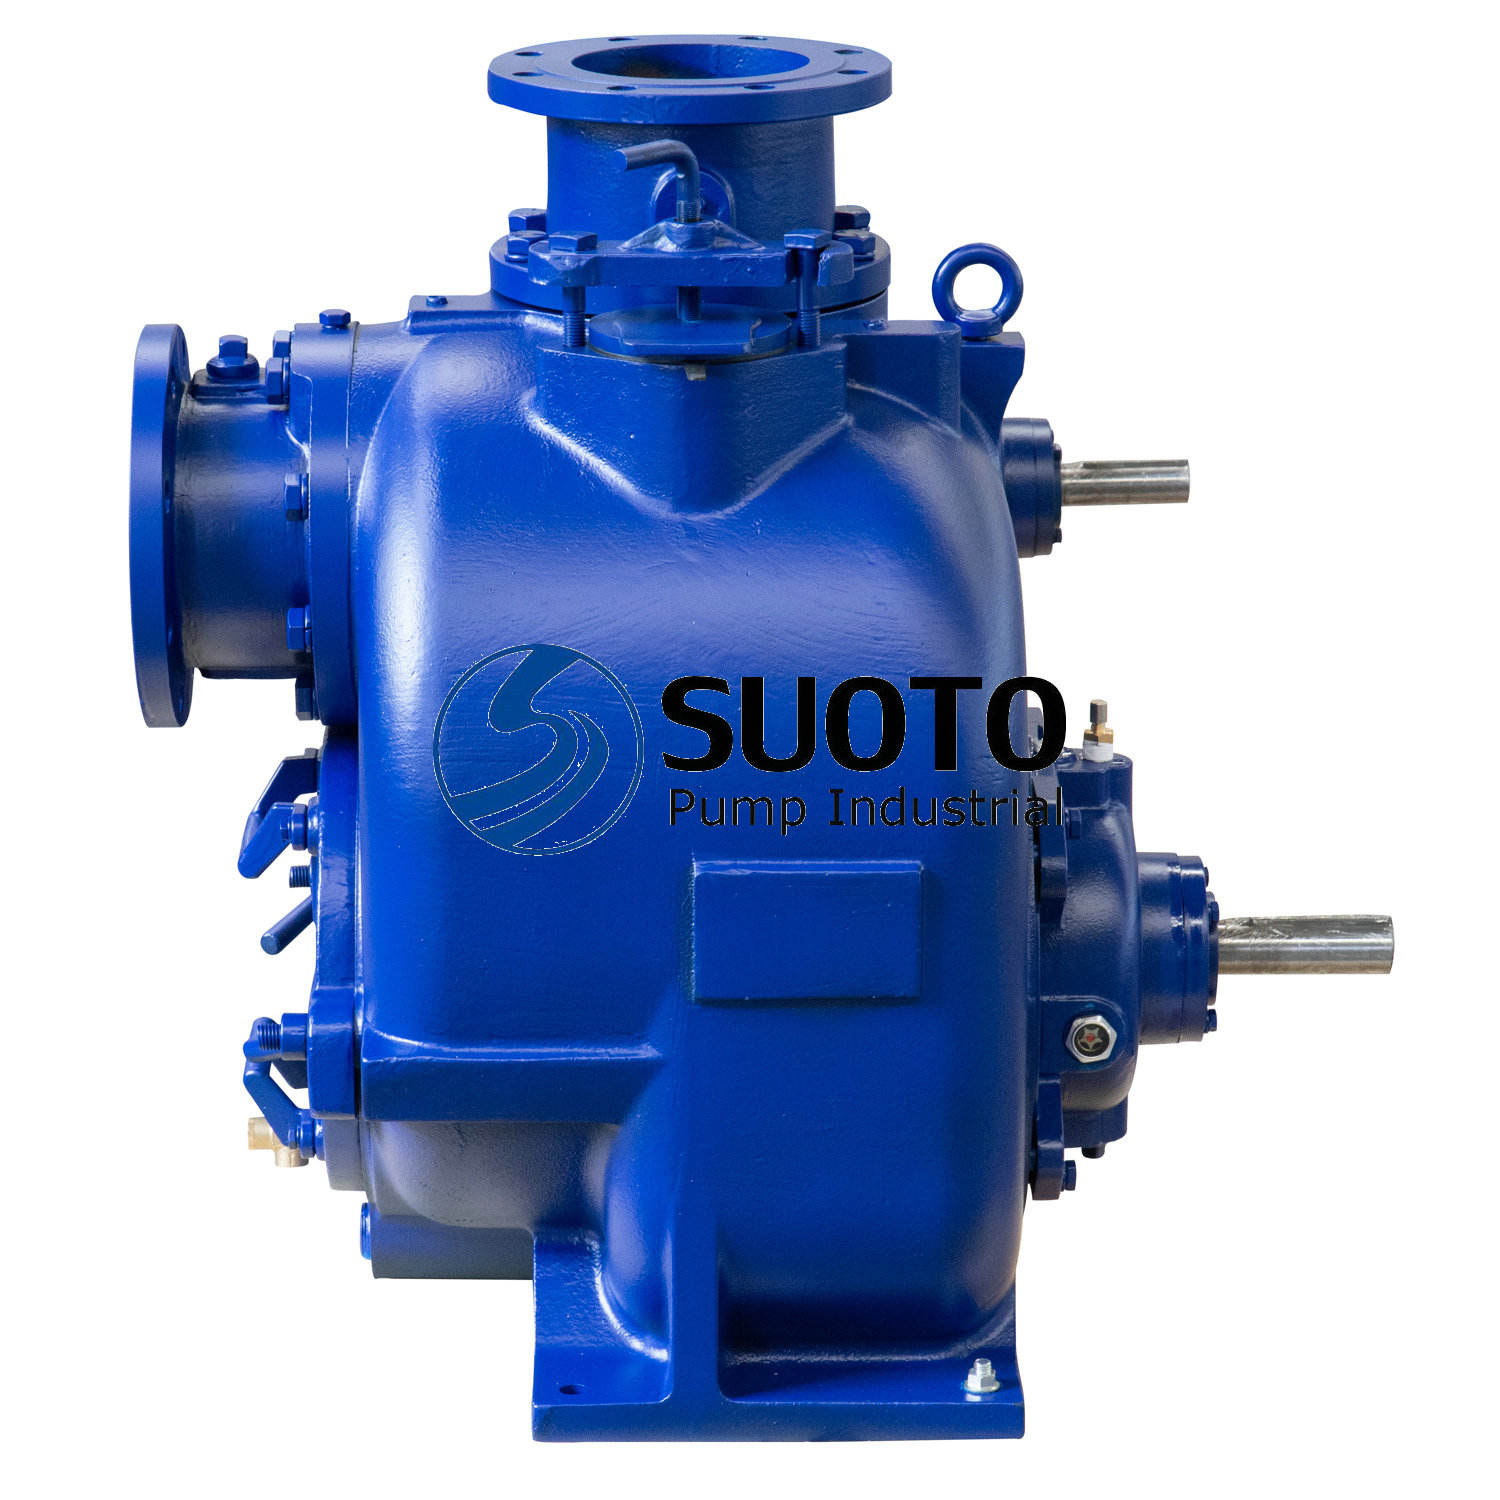 China Manufacture T U Super T Series Gorman Rupp Self-priming Centrifugal Trash Pump for Sewage Waste Water for Sale